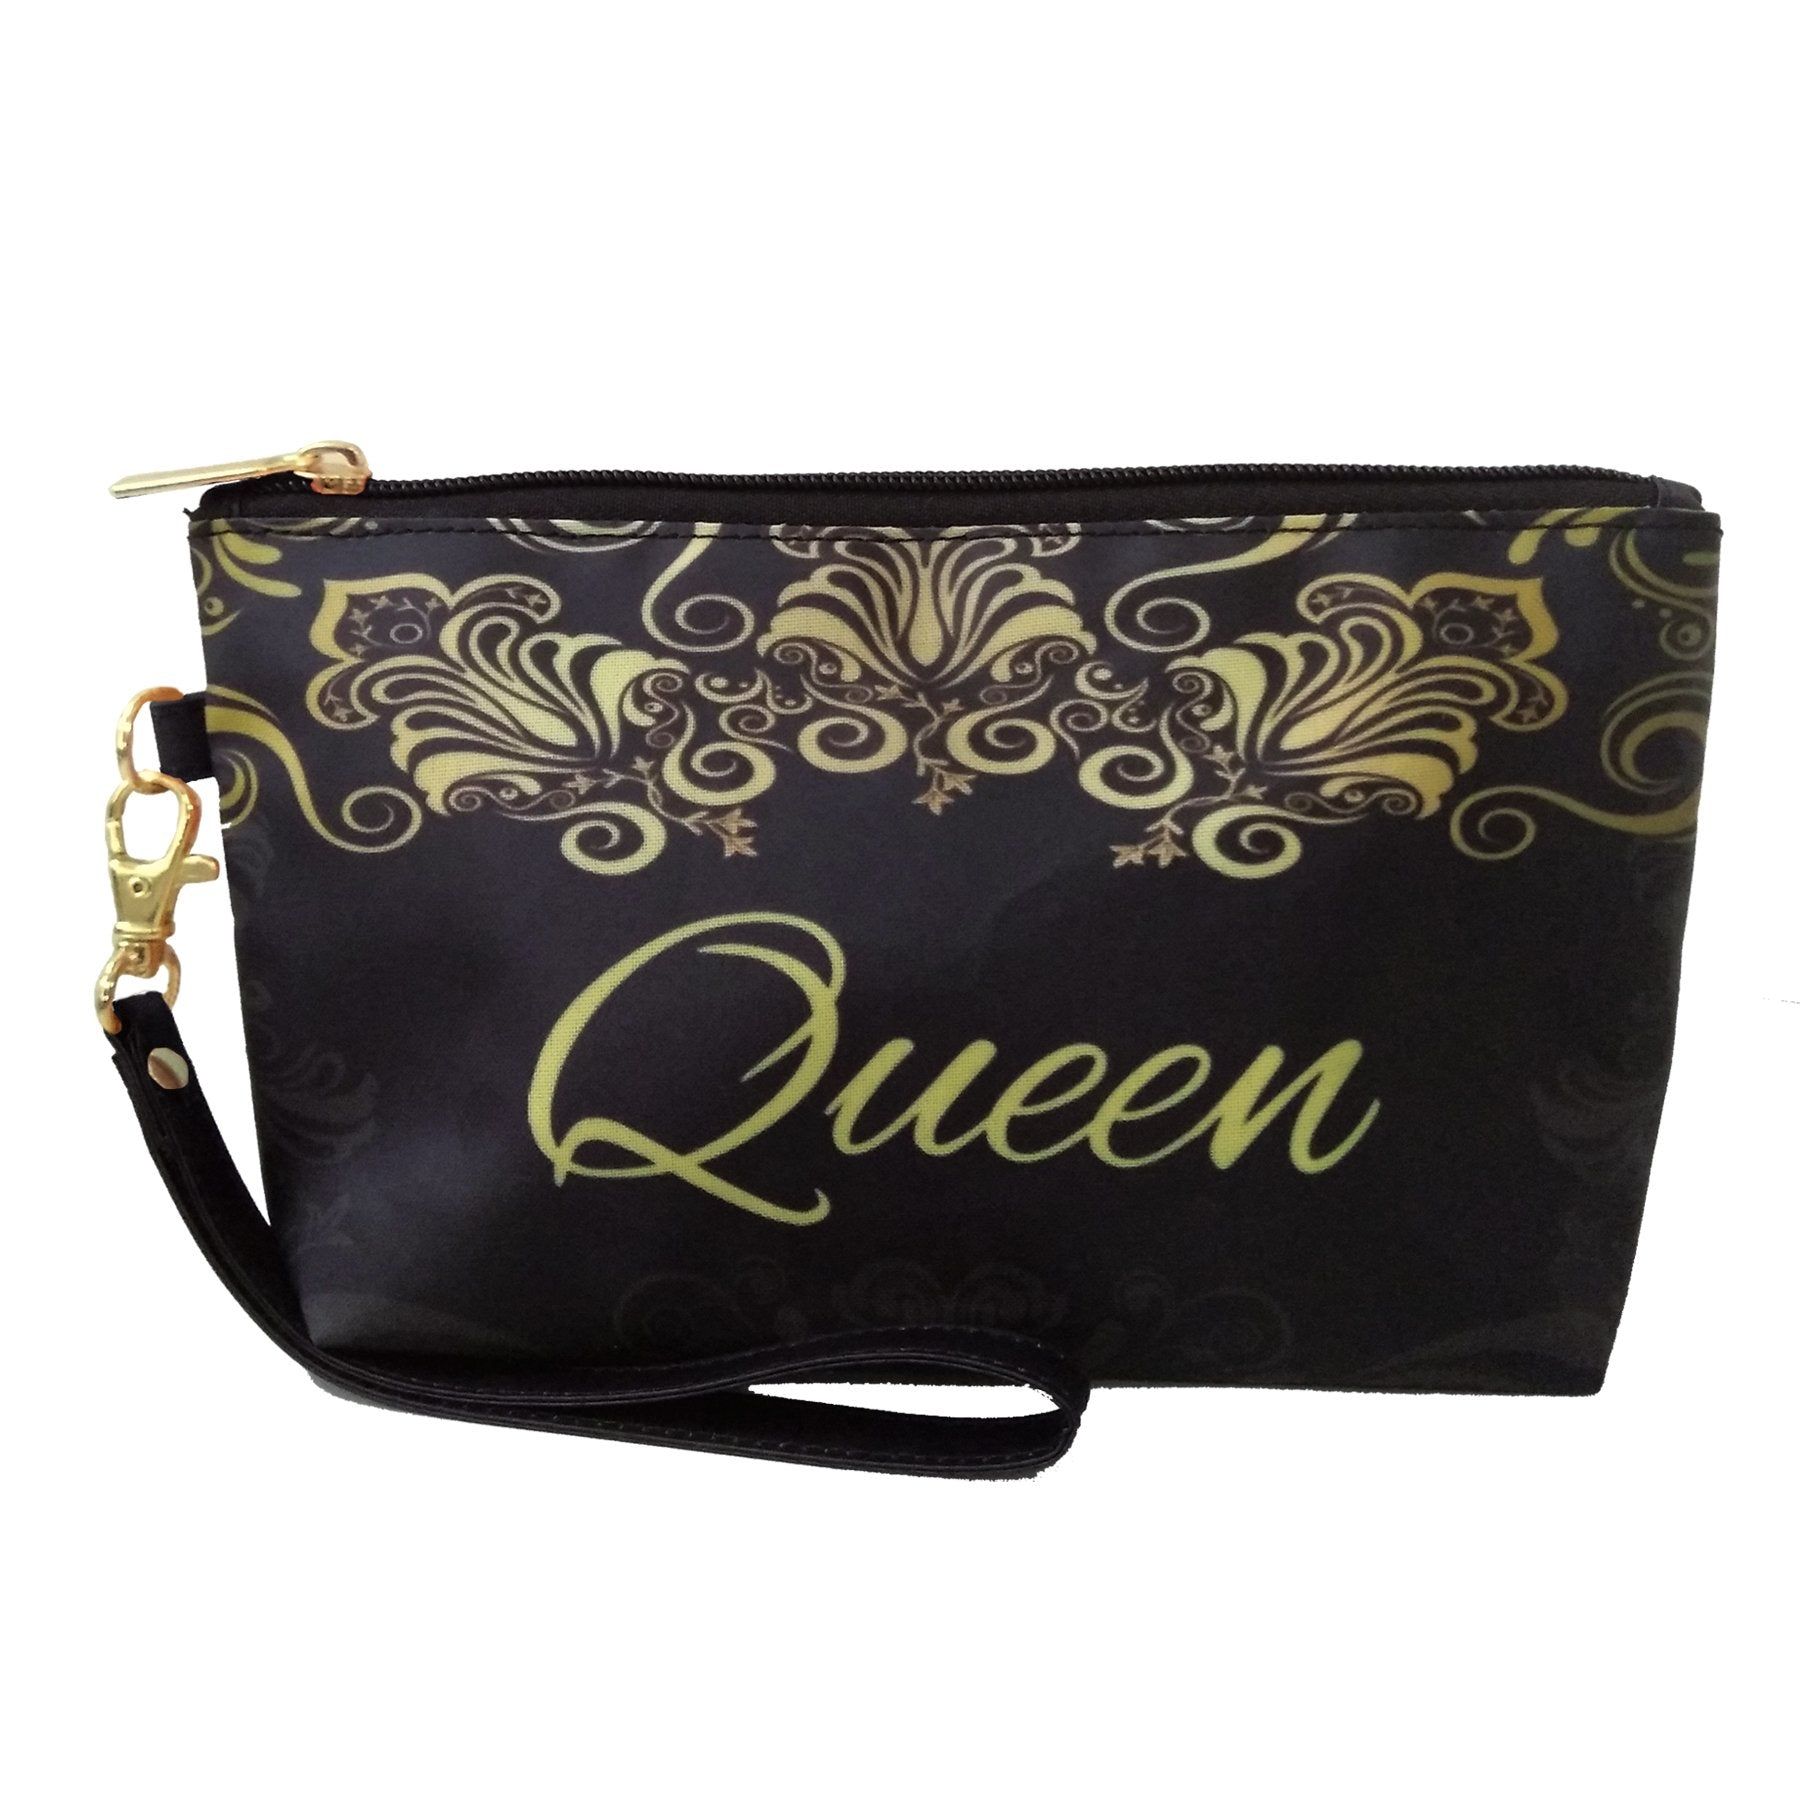 Queen: African American Cosmetic Bag by Shades of Color